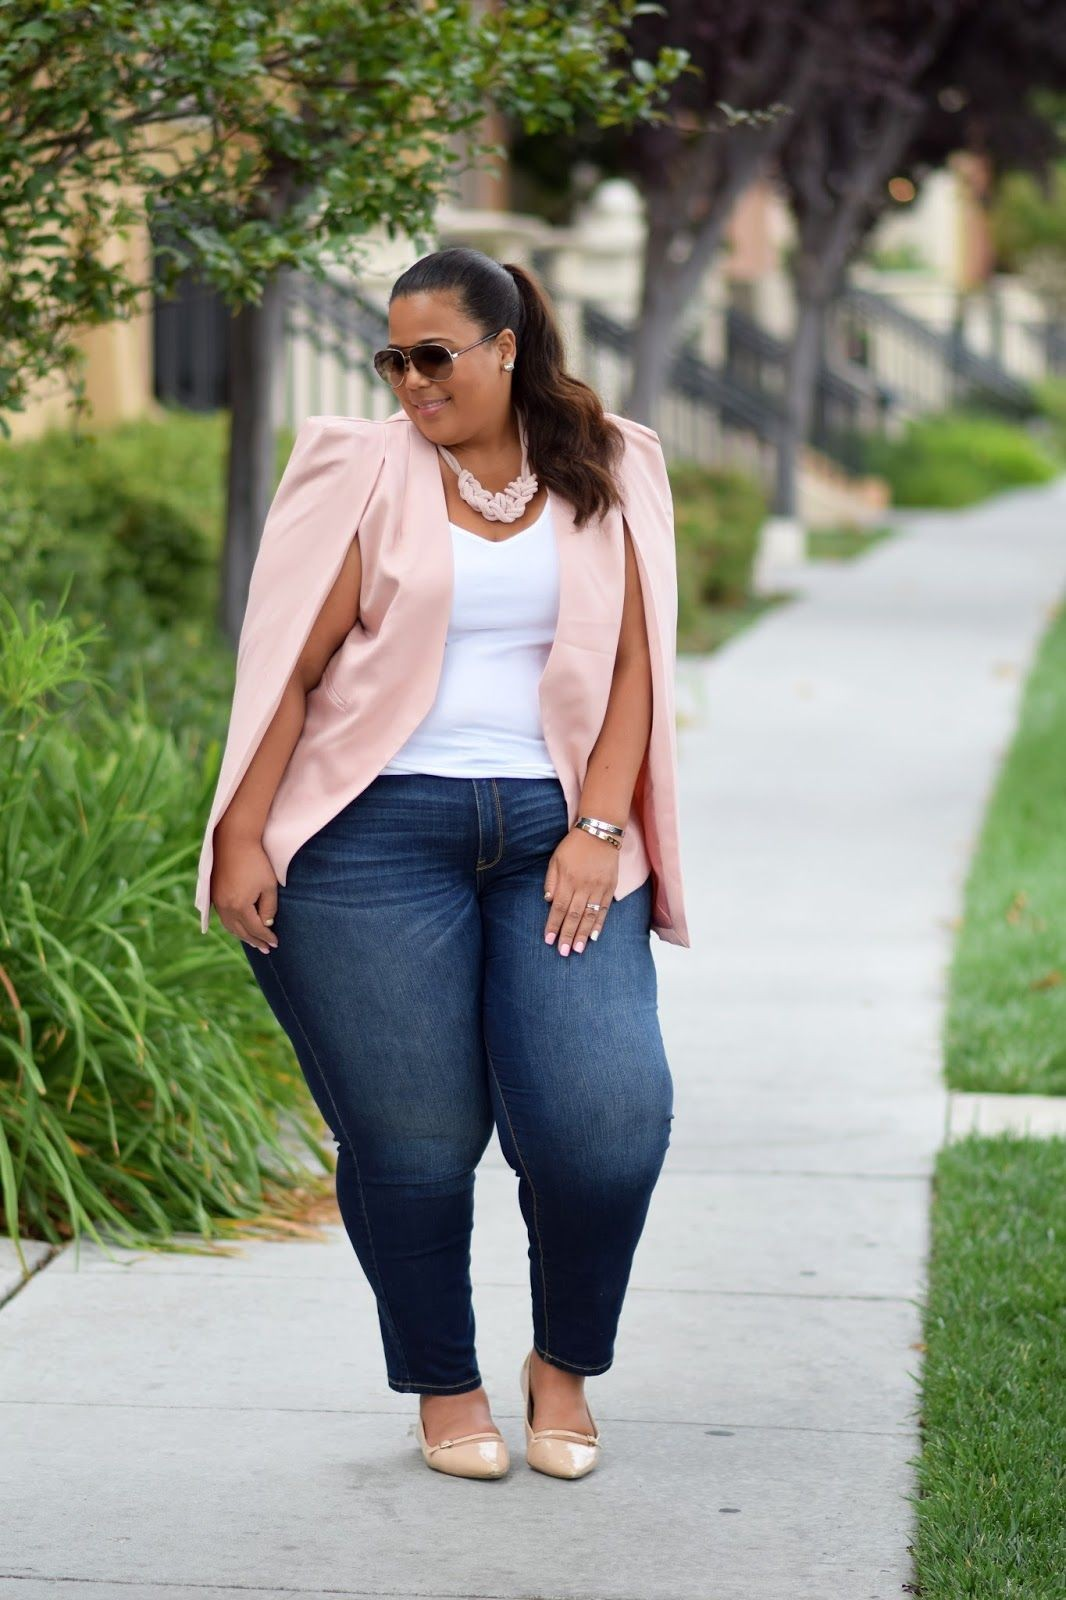 Its Been A While I Made Inspiring Posts On What Bbw Should Wear I Have Come Up With Some Fantastic Outfits Worn By Some Fashionable Bbw Models